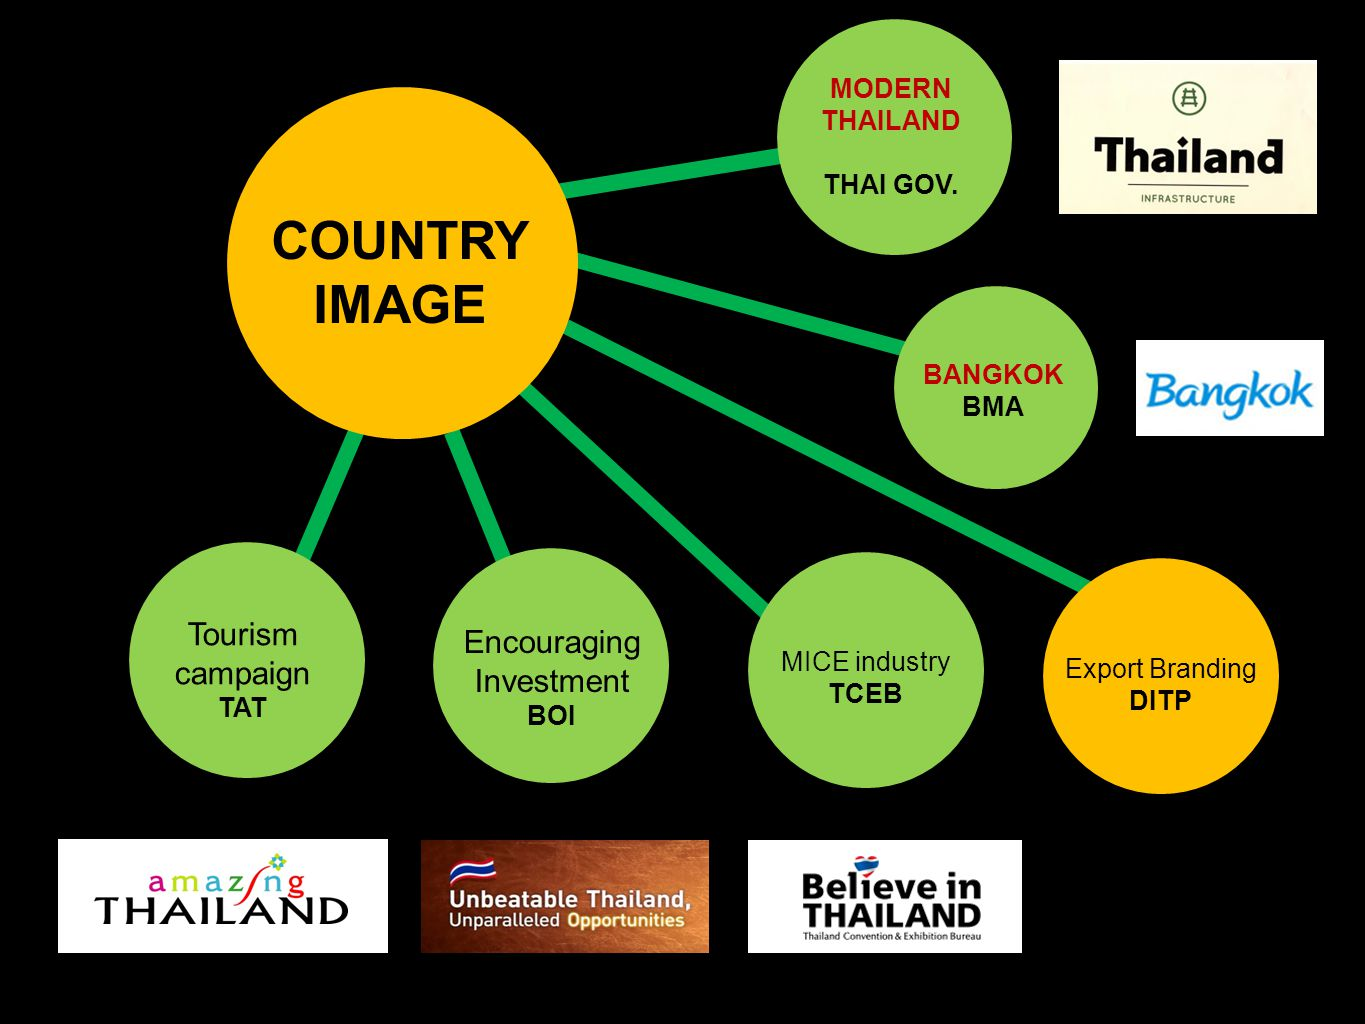 Tourism campaign TAT COUNTRY IMAGE MICE industry TCEB Export Branding DITP Encouraging Investment BOI MODERN THAILAND THAI GOV. BANGKOK BMA